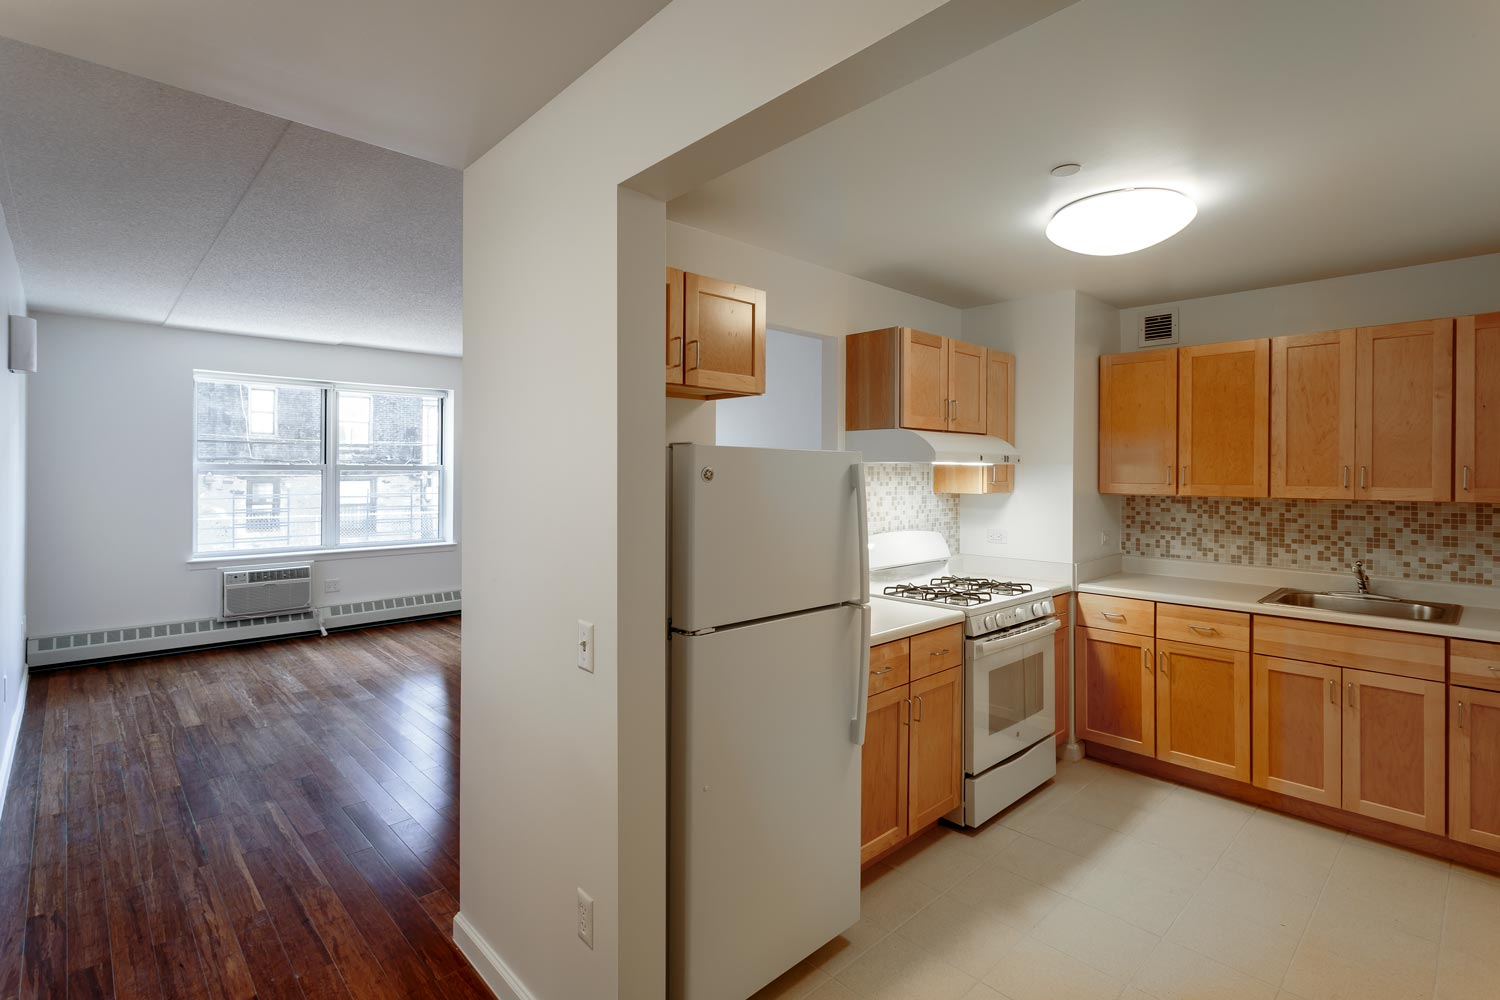 Open kitchens, sustainable materials, efficient lighting, fixtures and appliances in Tiebout Green affordable apartments.